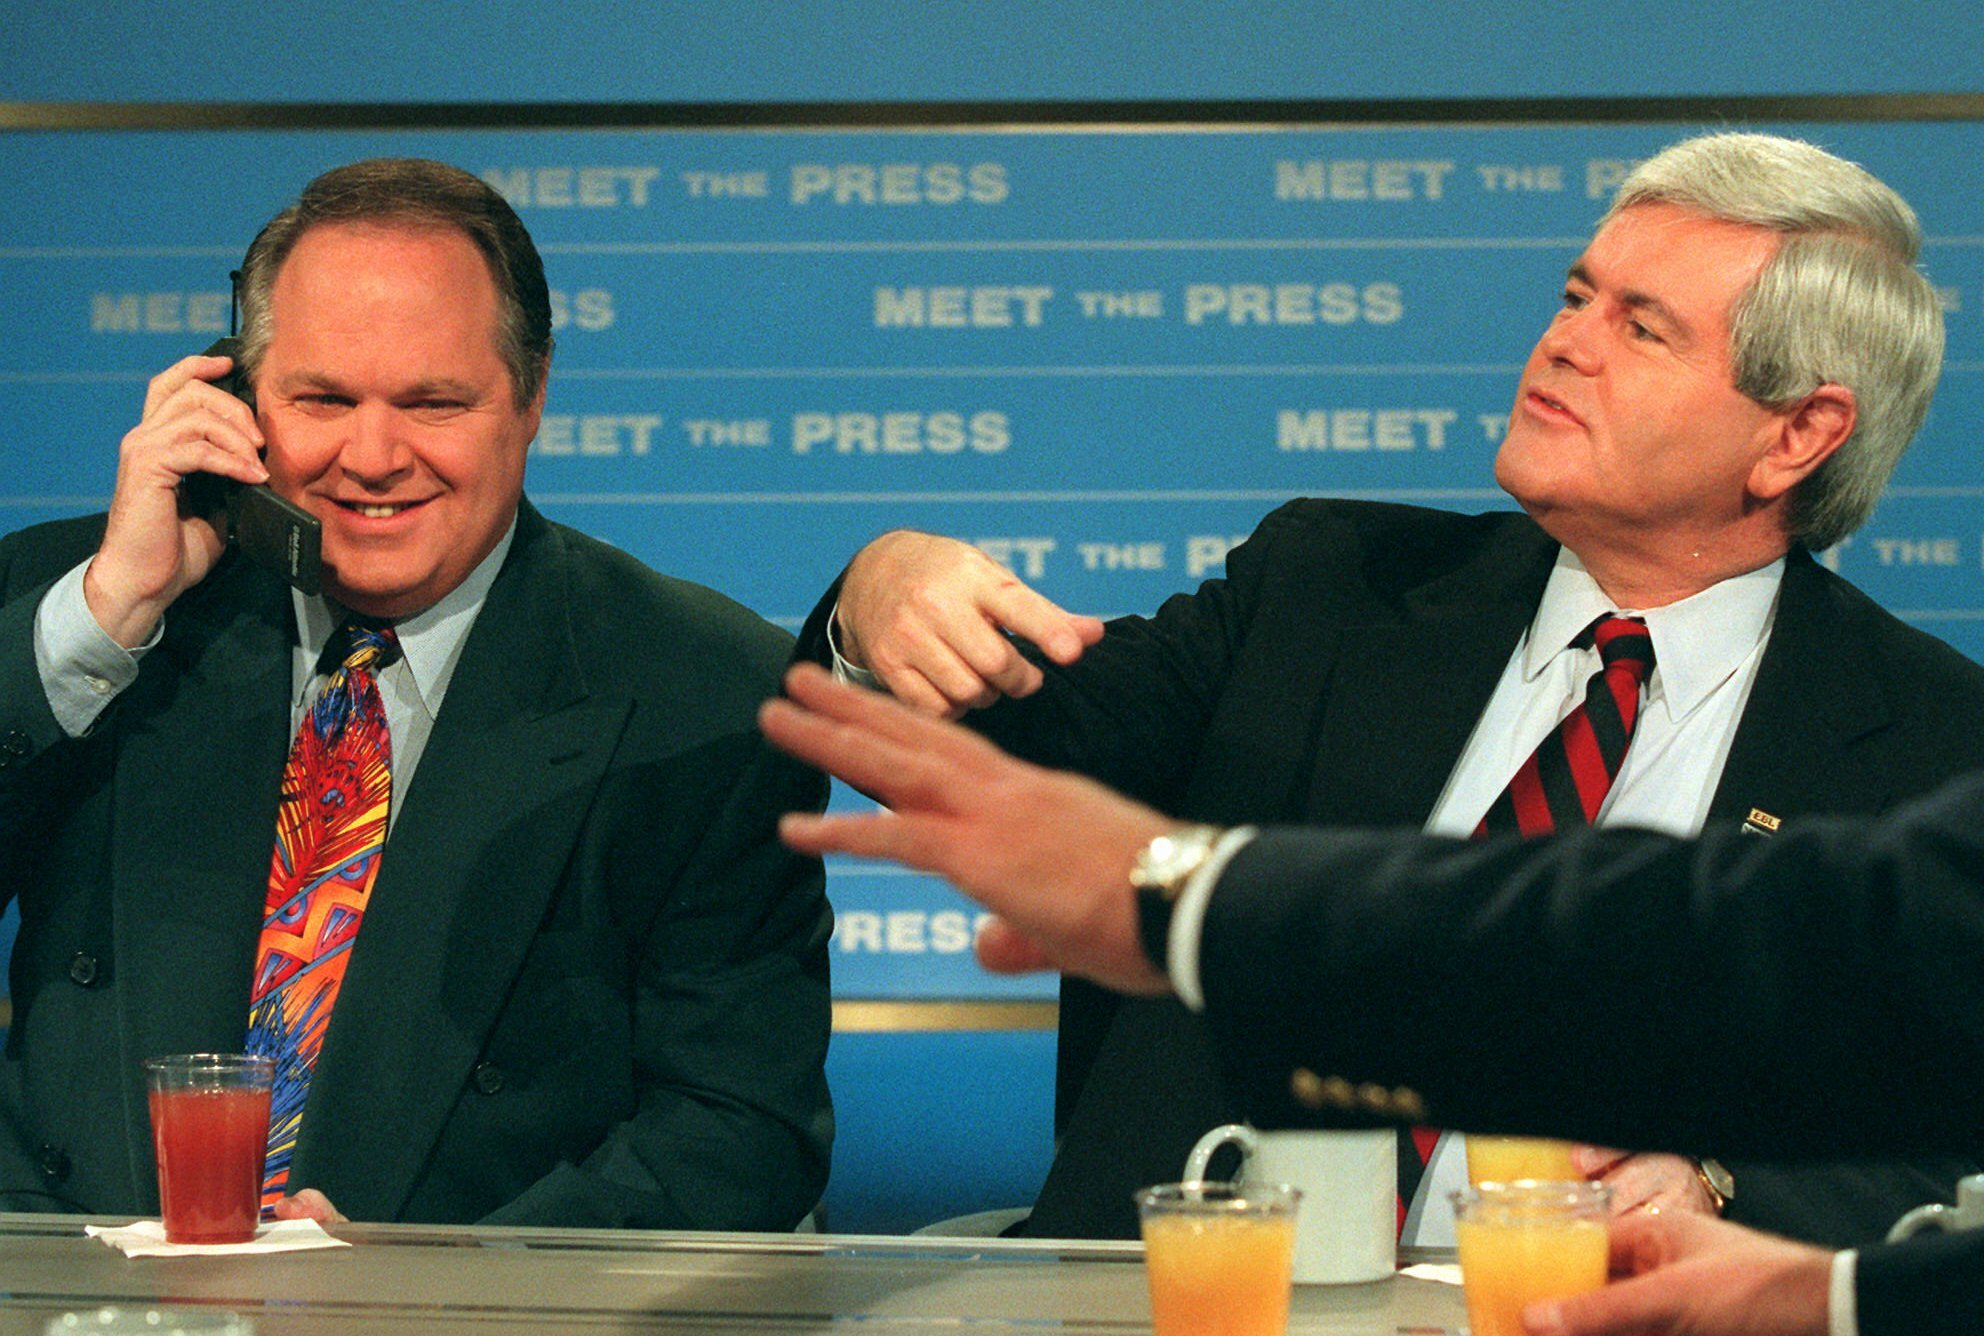 I Used to be a Run Limbaugh Whisperer